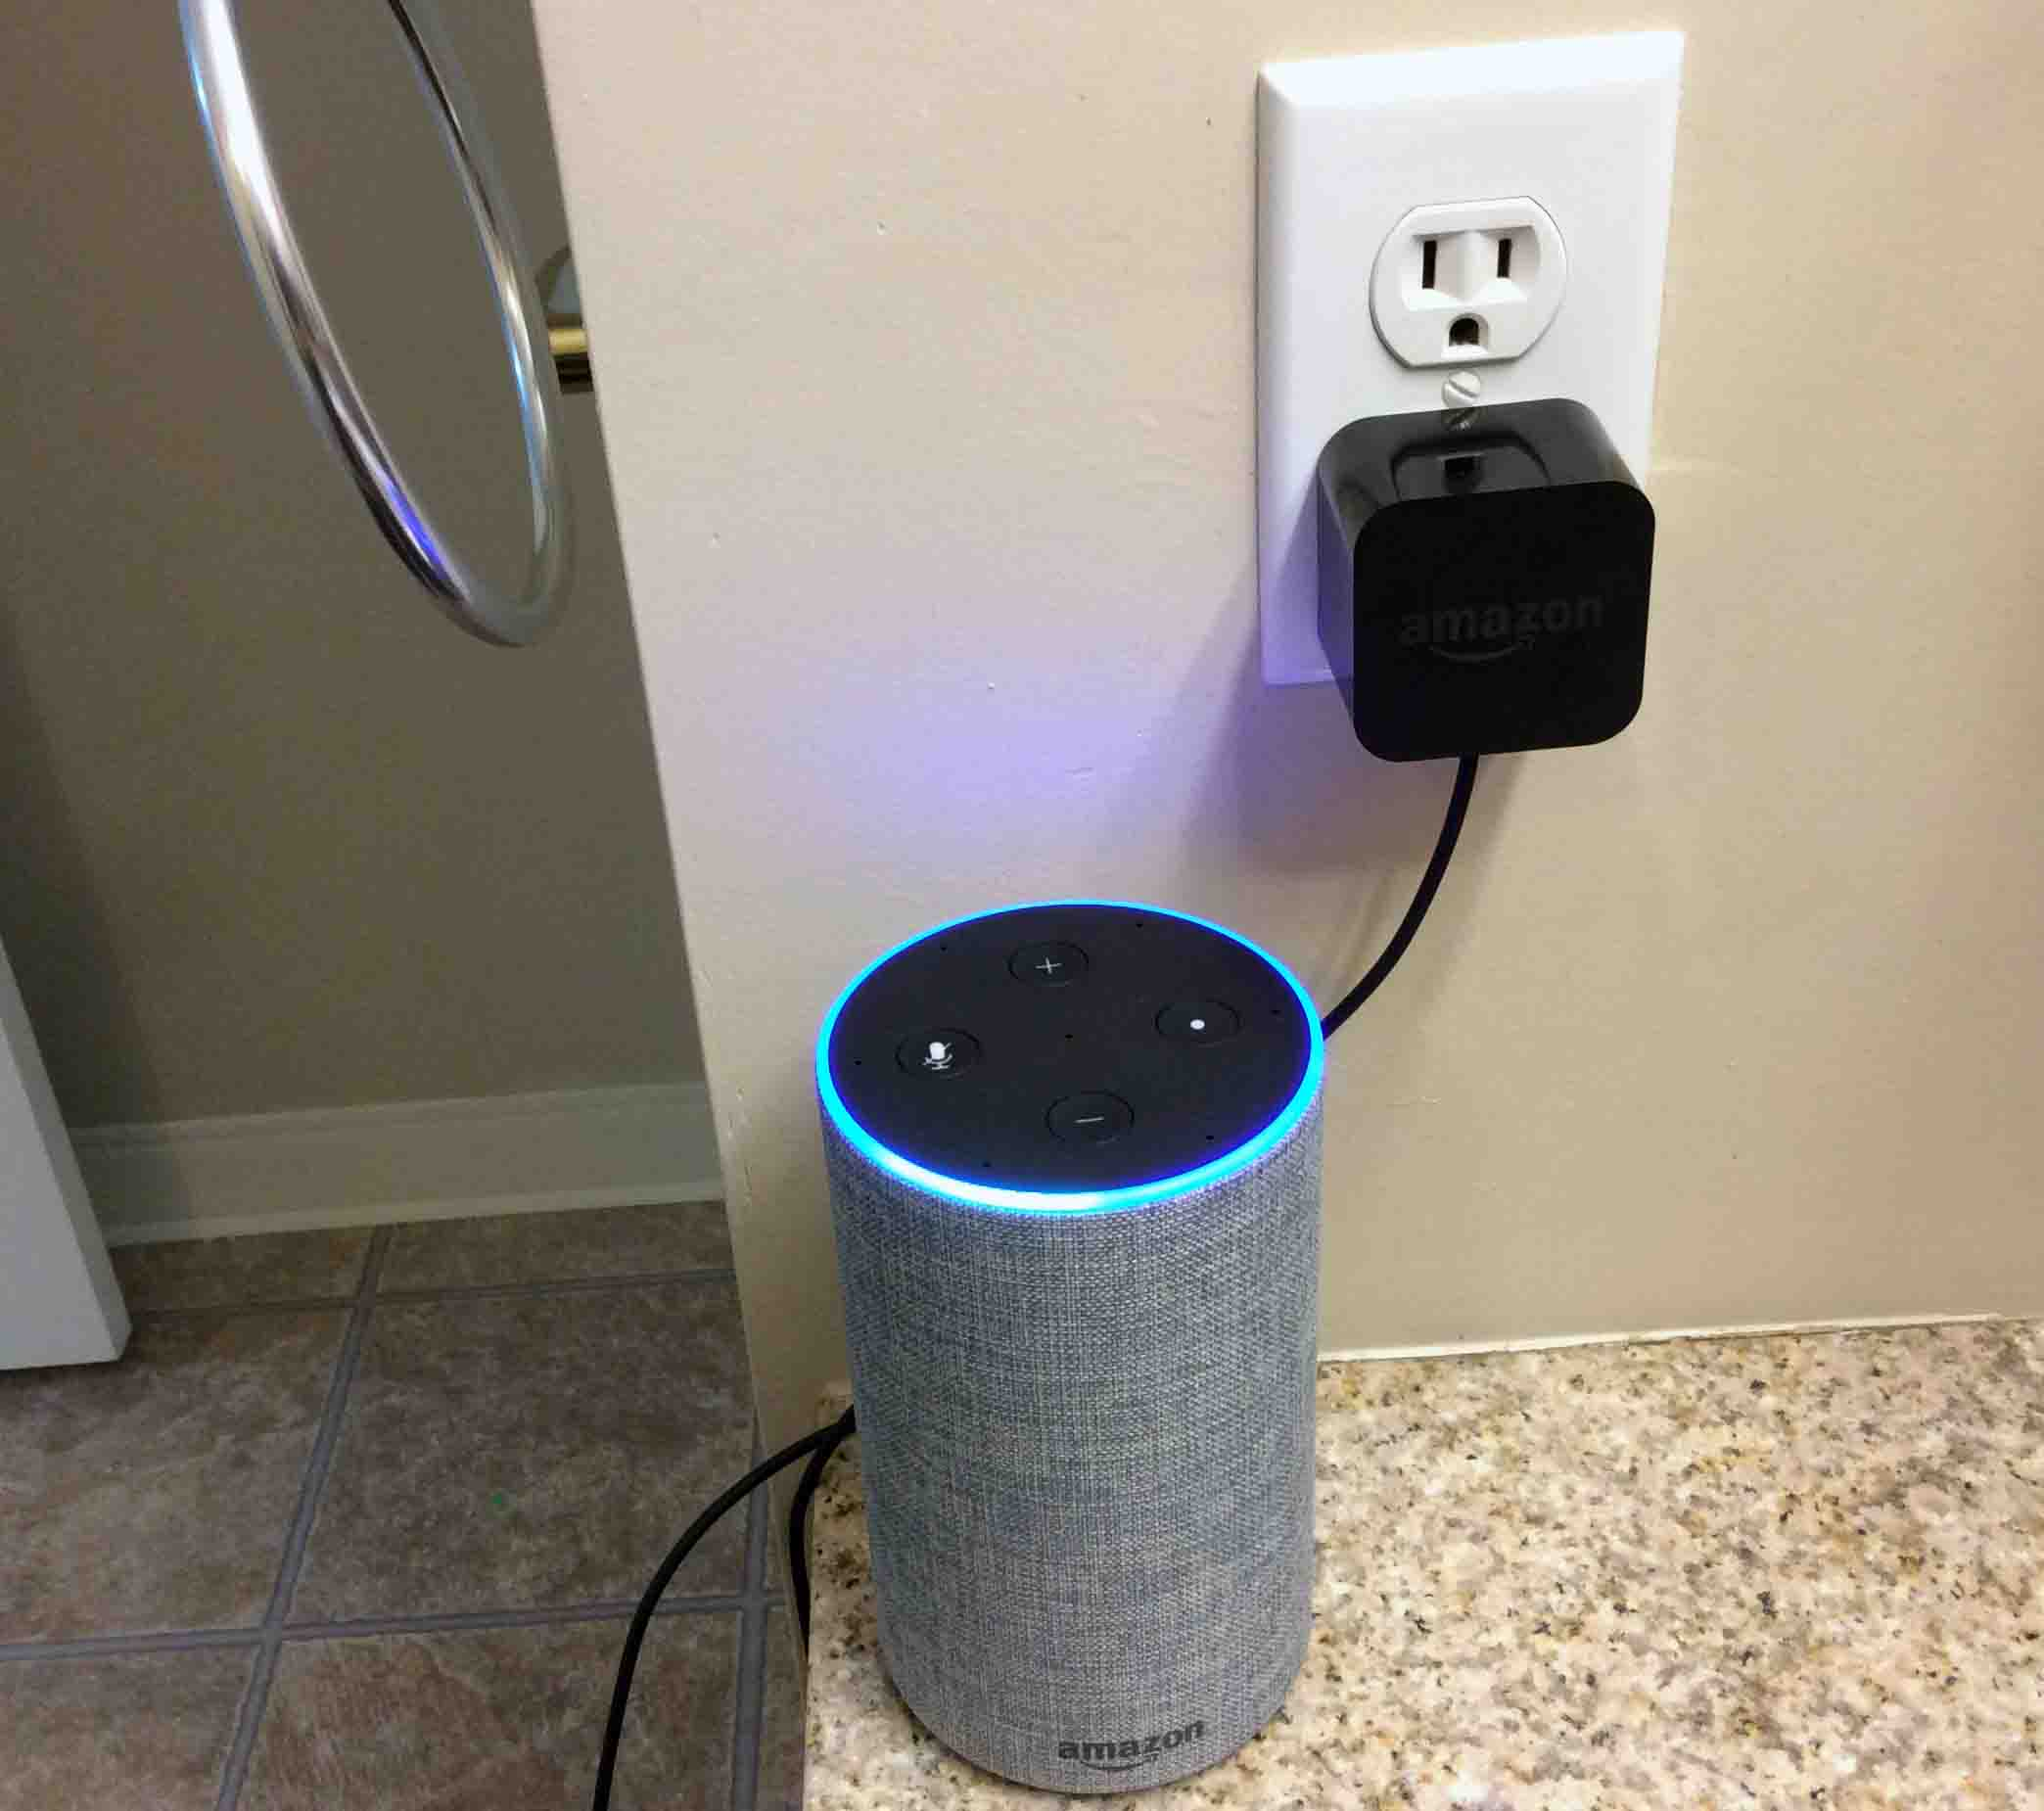 Picture Of The Amazon Alexa Echo Gen 2 Smart Speaker With Power Adapter Plugged Into